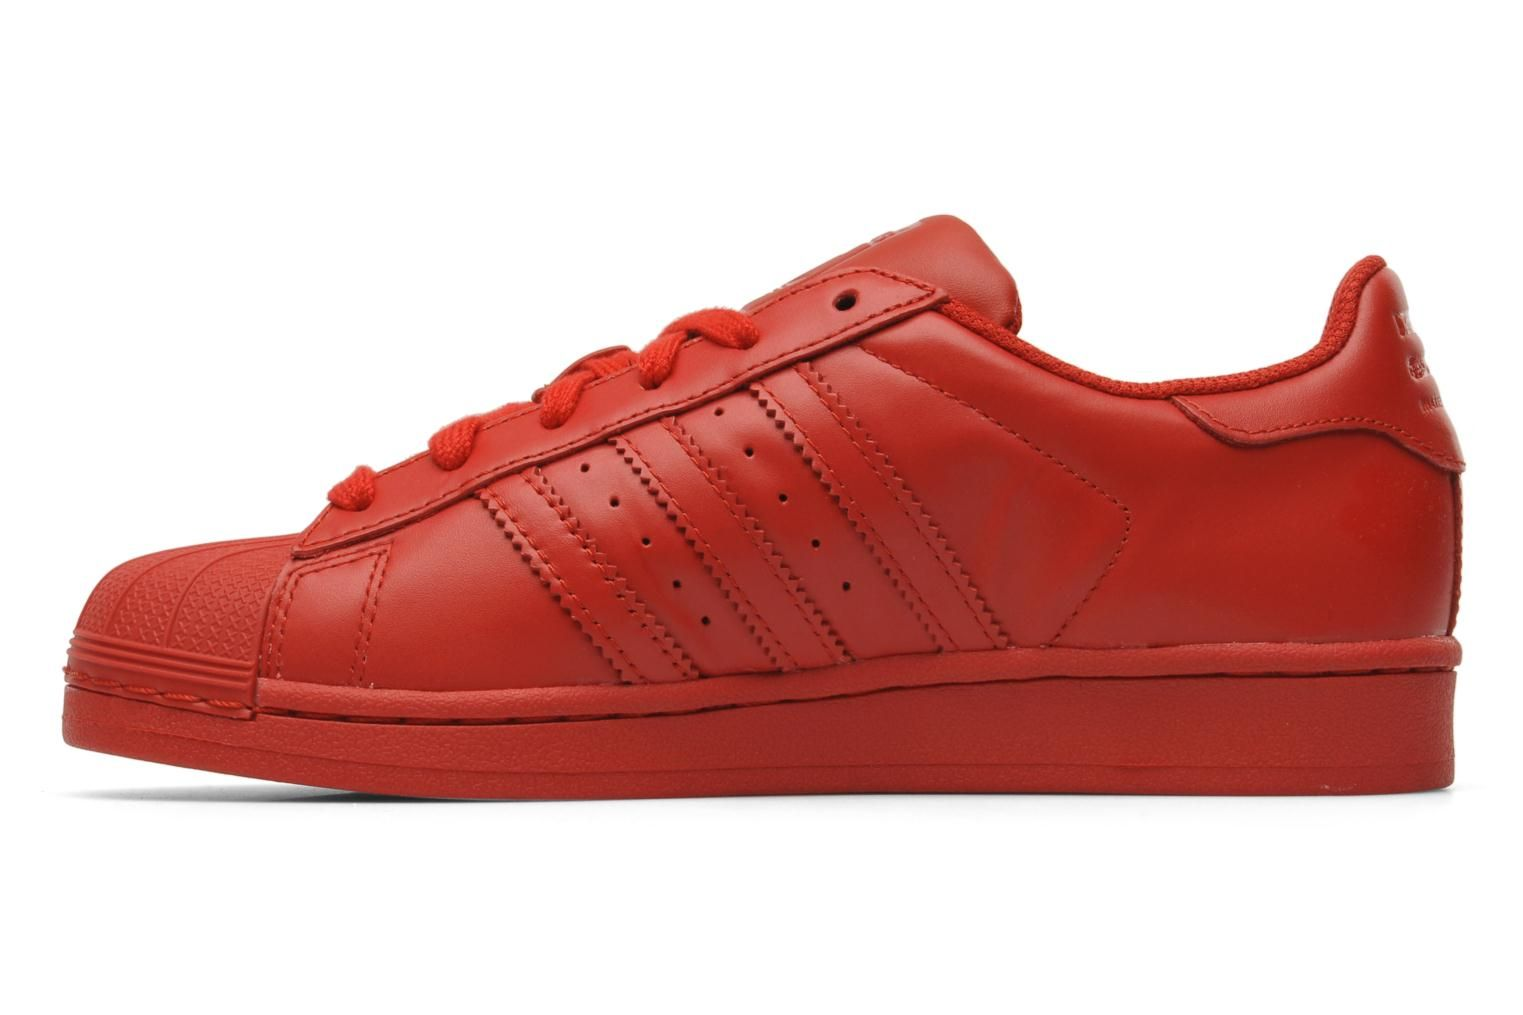 adidas superstar color rouge